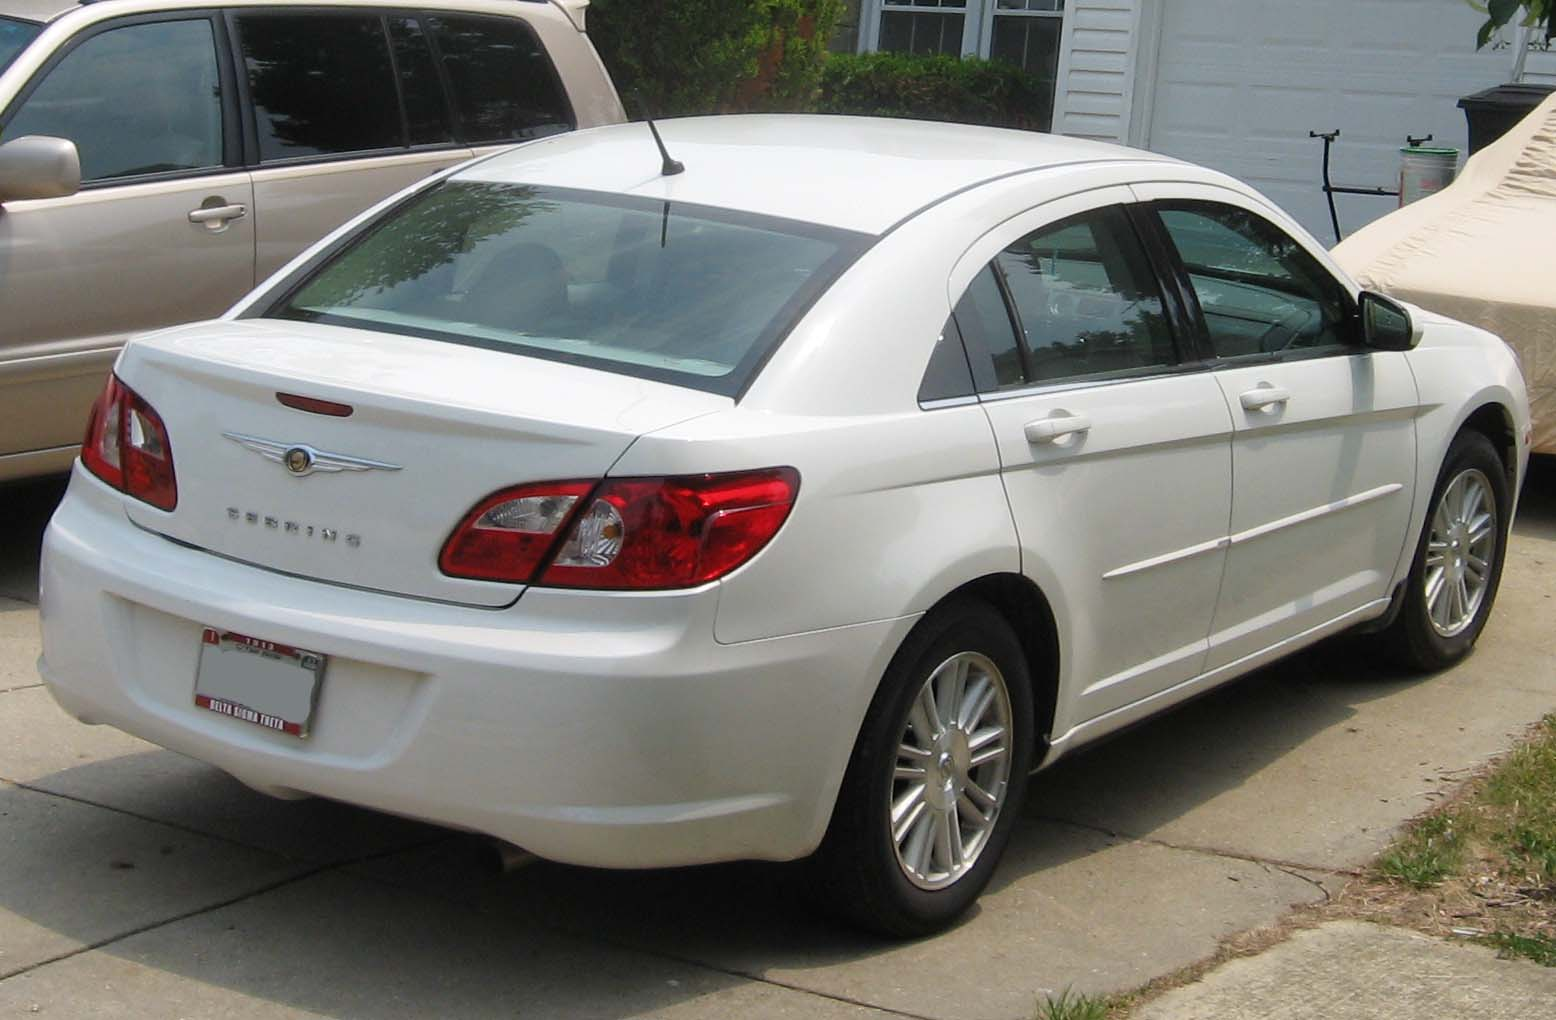 2007 Chrysler Sebring #14